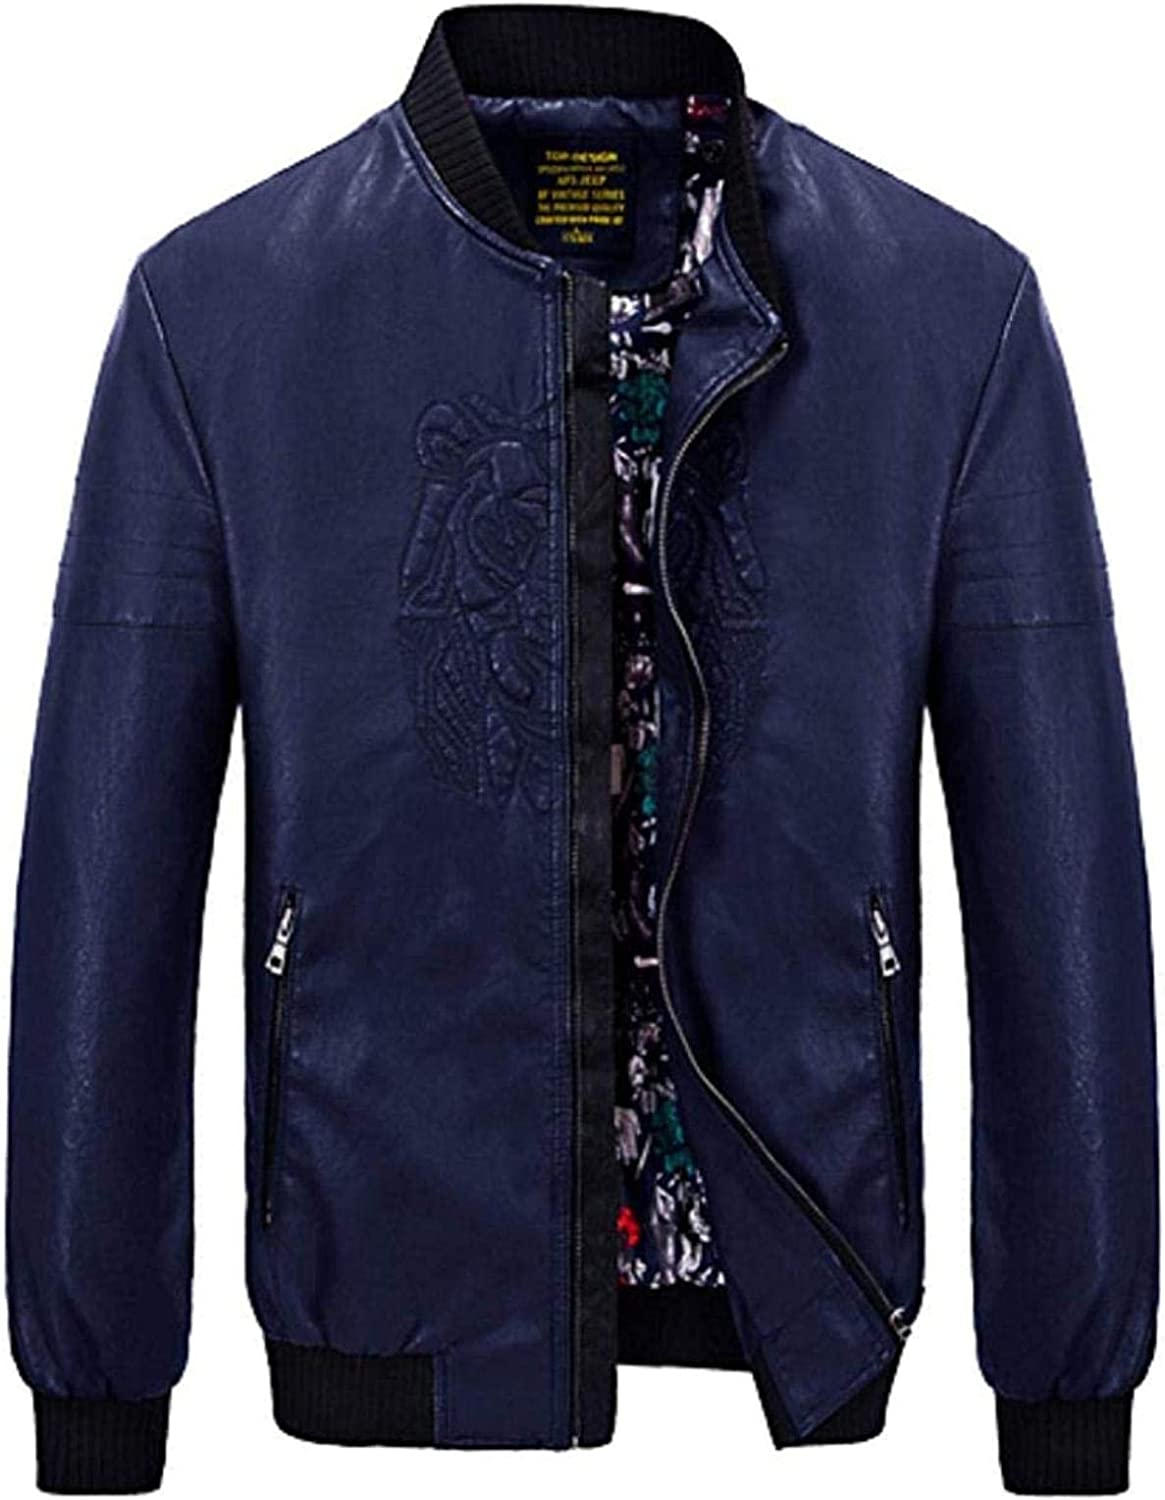 Men Stand Collar Blue Don't miss the campaign Mesa Mall Leather Jackets Office Wo Coat Windbreaker